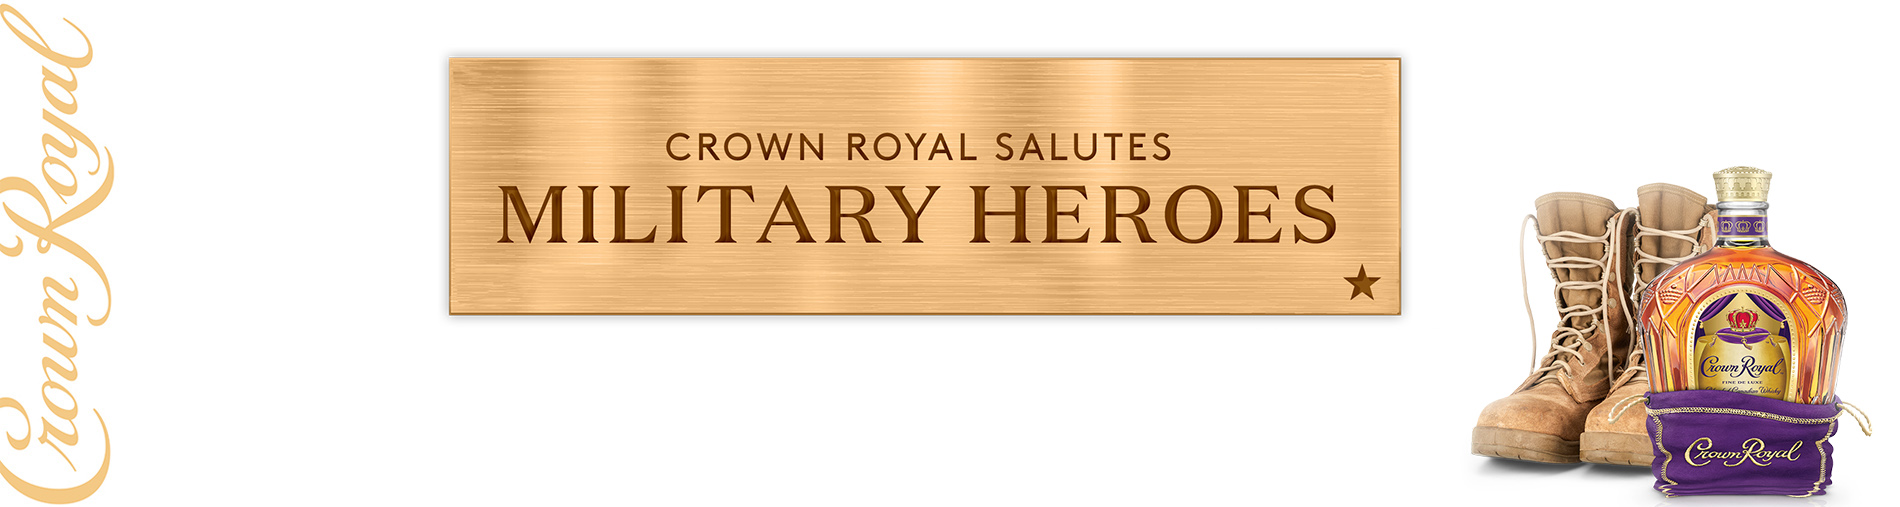 "Bottle of Crown Royale beside a gold plaque that says ""Crown Royal Salutes Military Heros""."